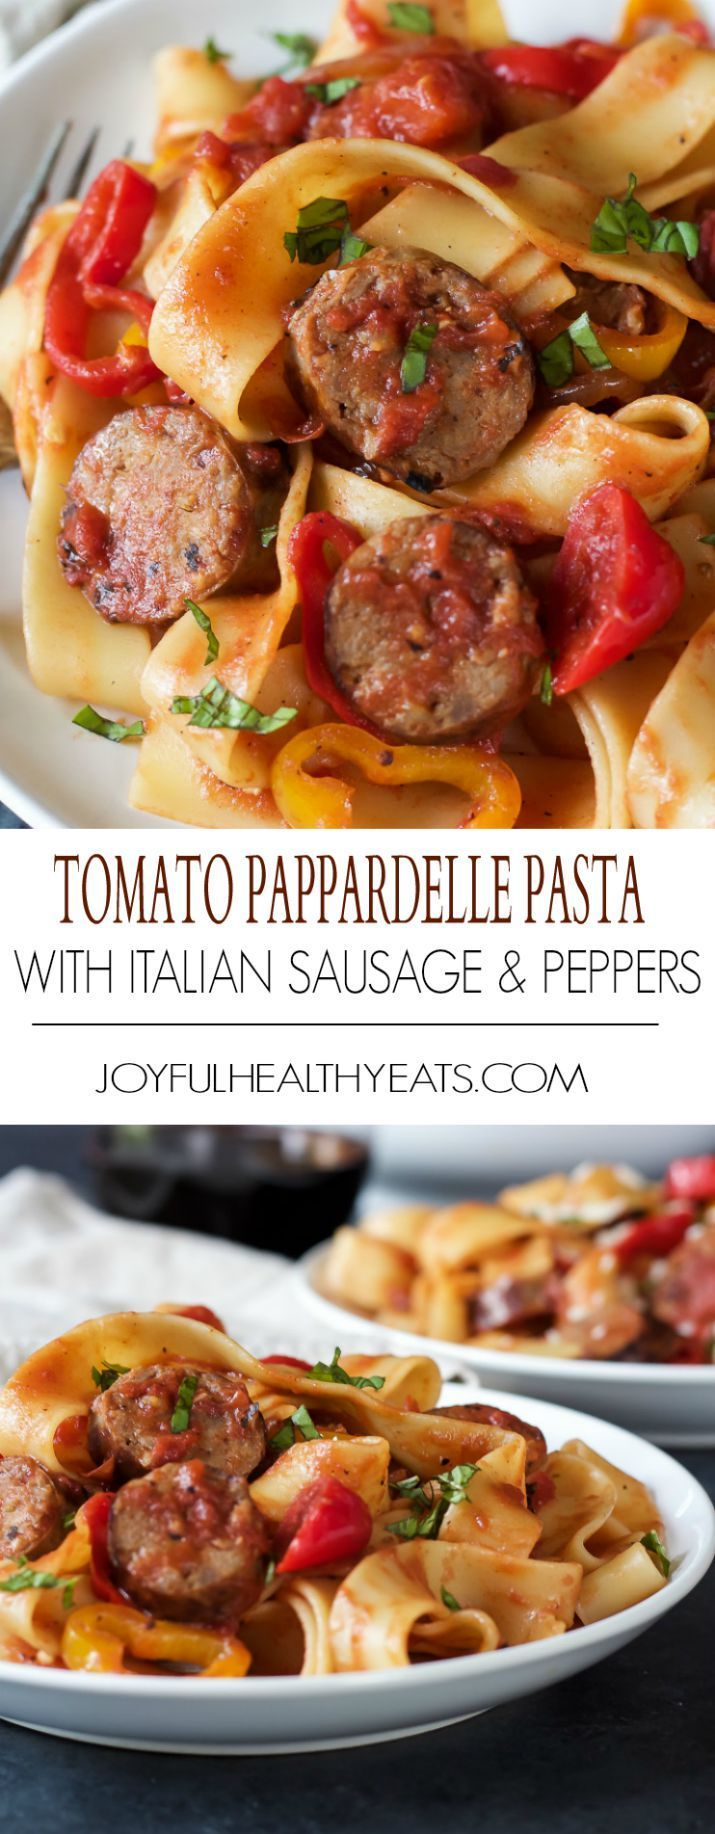 Tomato Pappardelle Pasta with Italian Sausage and Peppers by joyfulhealthyeats: A delicious comfort food recipe done in 30 minutes - perfect for school nights. #Pasta #Sausage